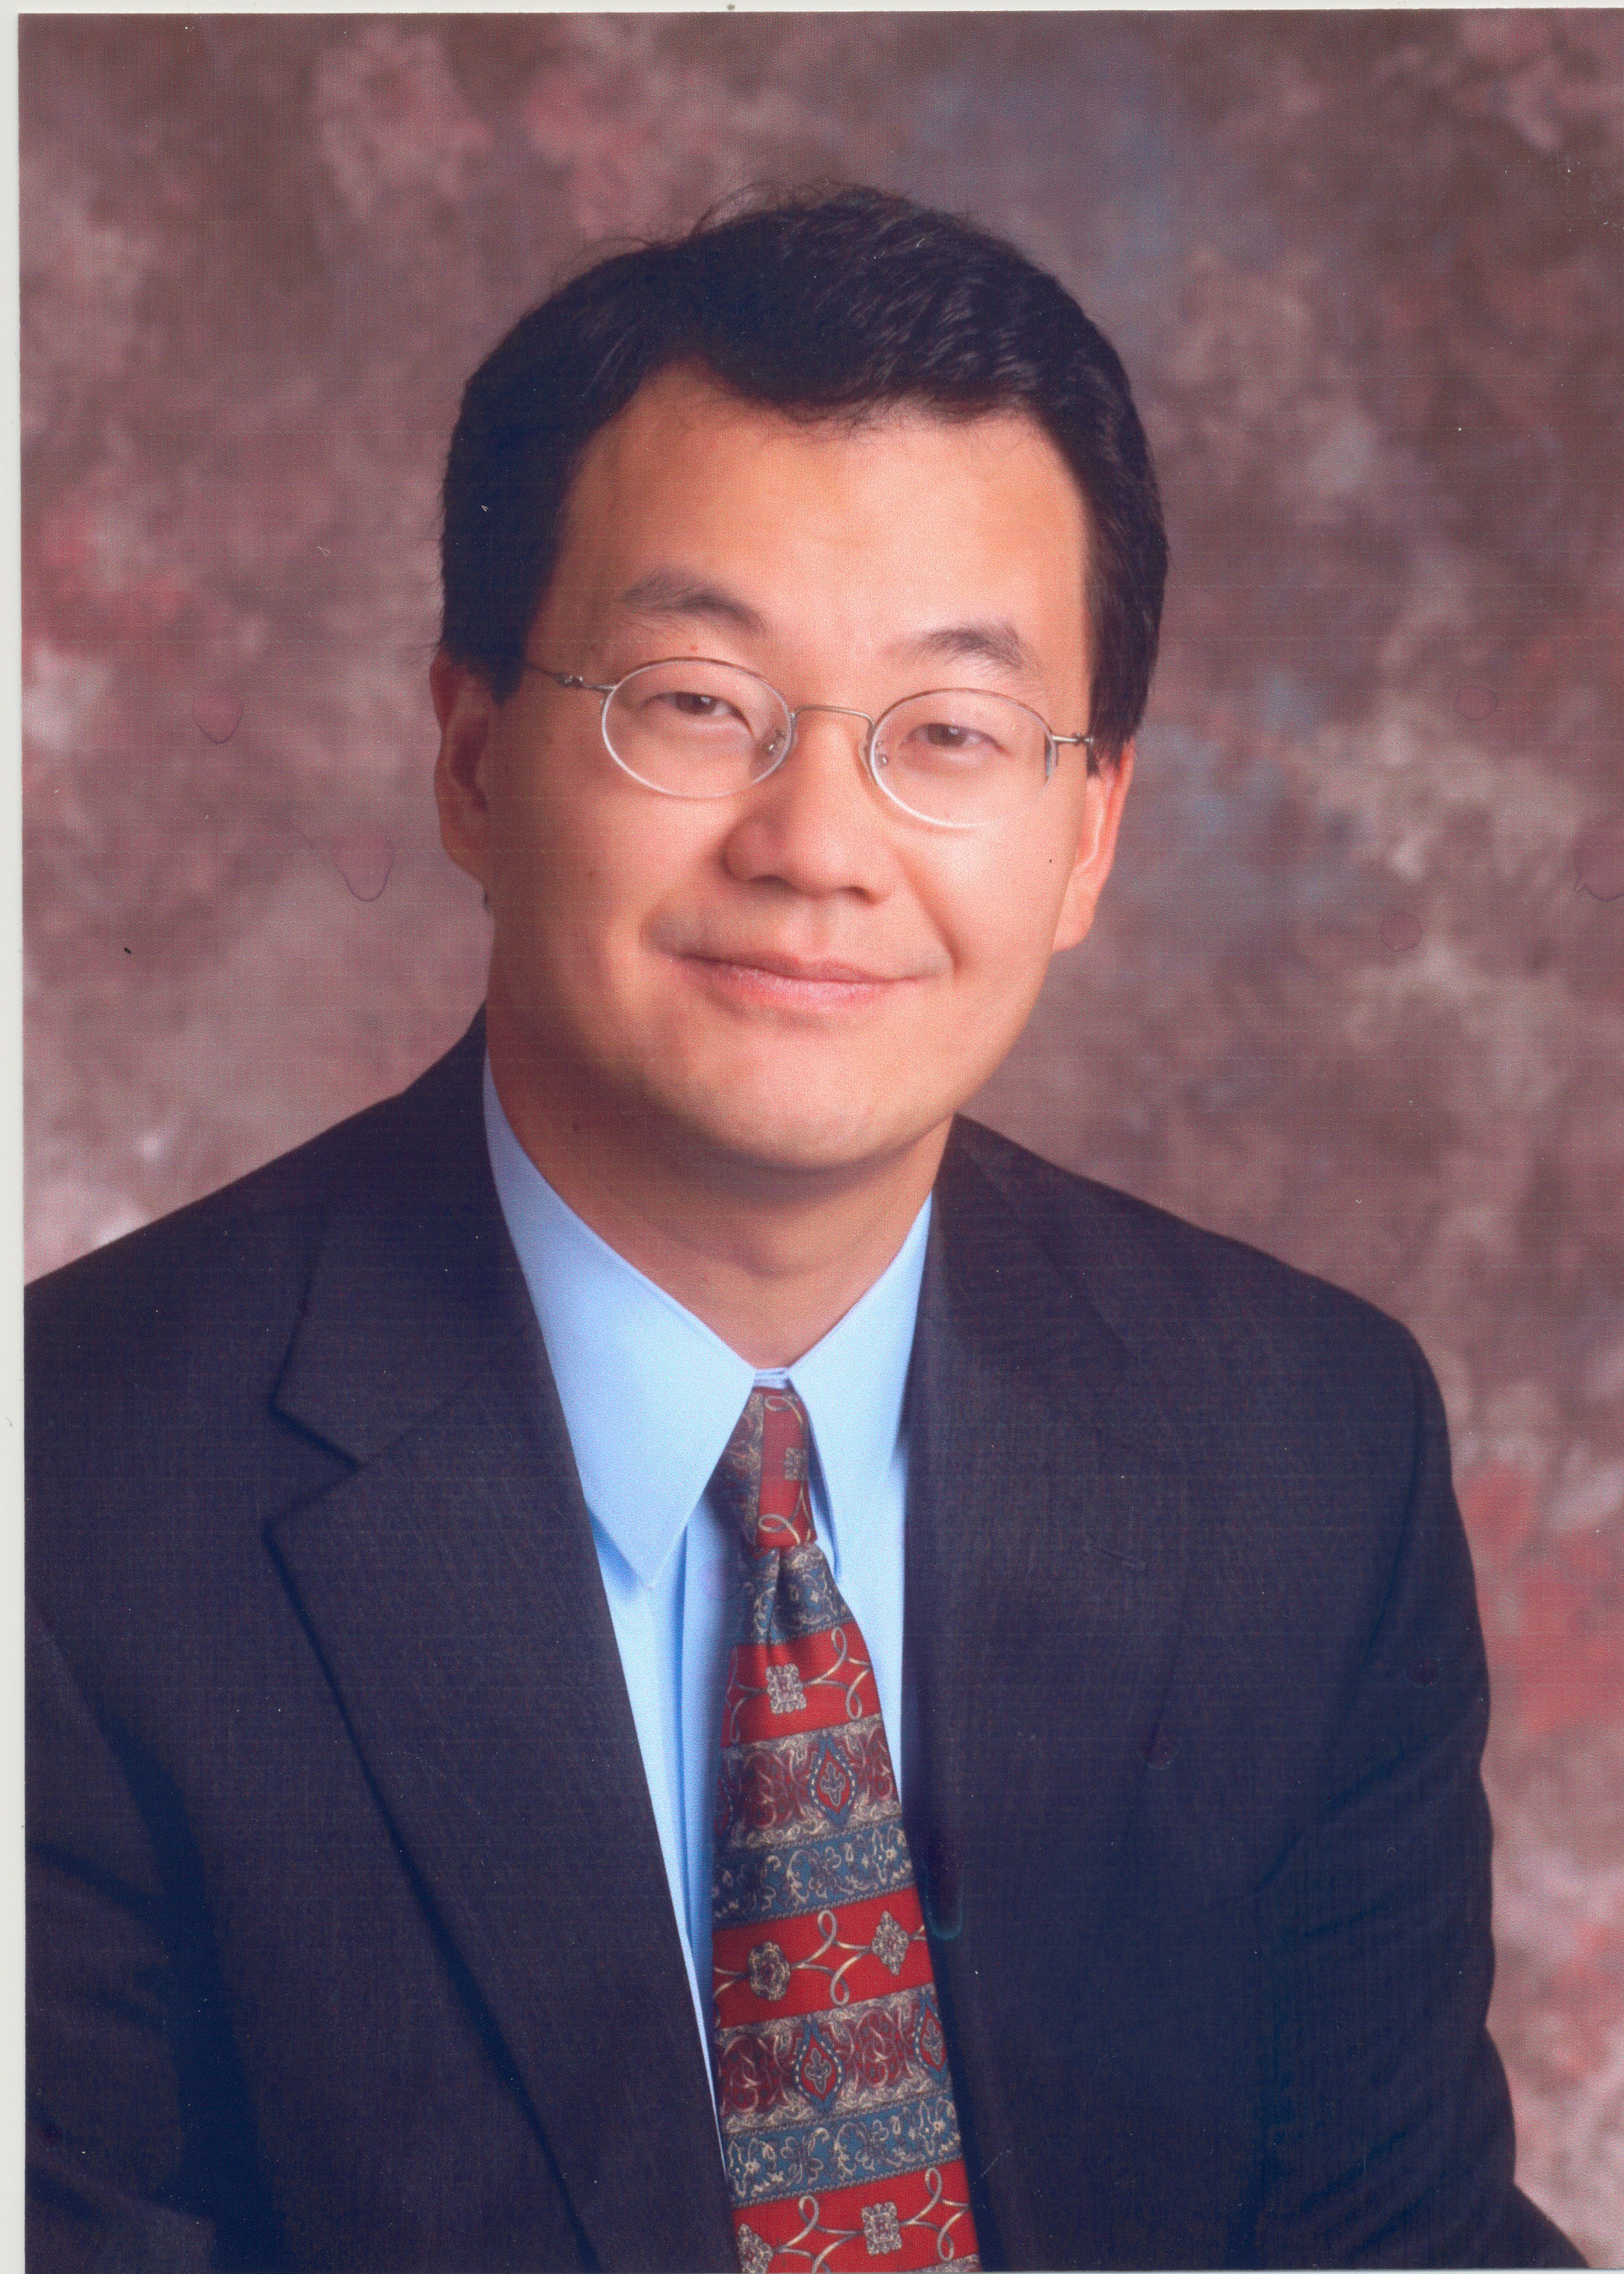 Lawrence Yun is chief economist and senior vice president of research at the National Association of Realtors(r). Yun oversees and is responsible for a wide range of research activity for the association including NAR's Existing Home Sales statistics, Affordability Index, and Home Buyers and Sellers Profile Report. He regularly provides commentary on real estate market trends for its 1 million Realtor(r) members. (PRNewsFoto/National Association of Realtors)